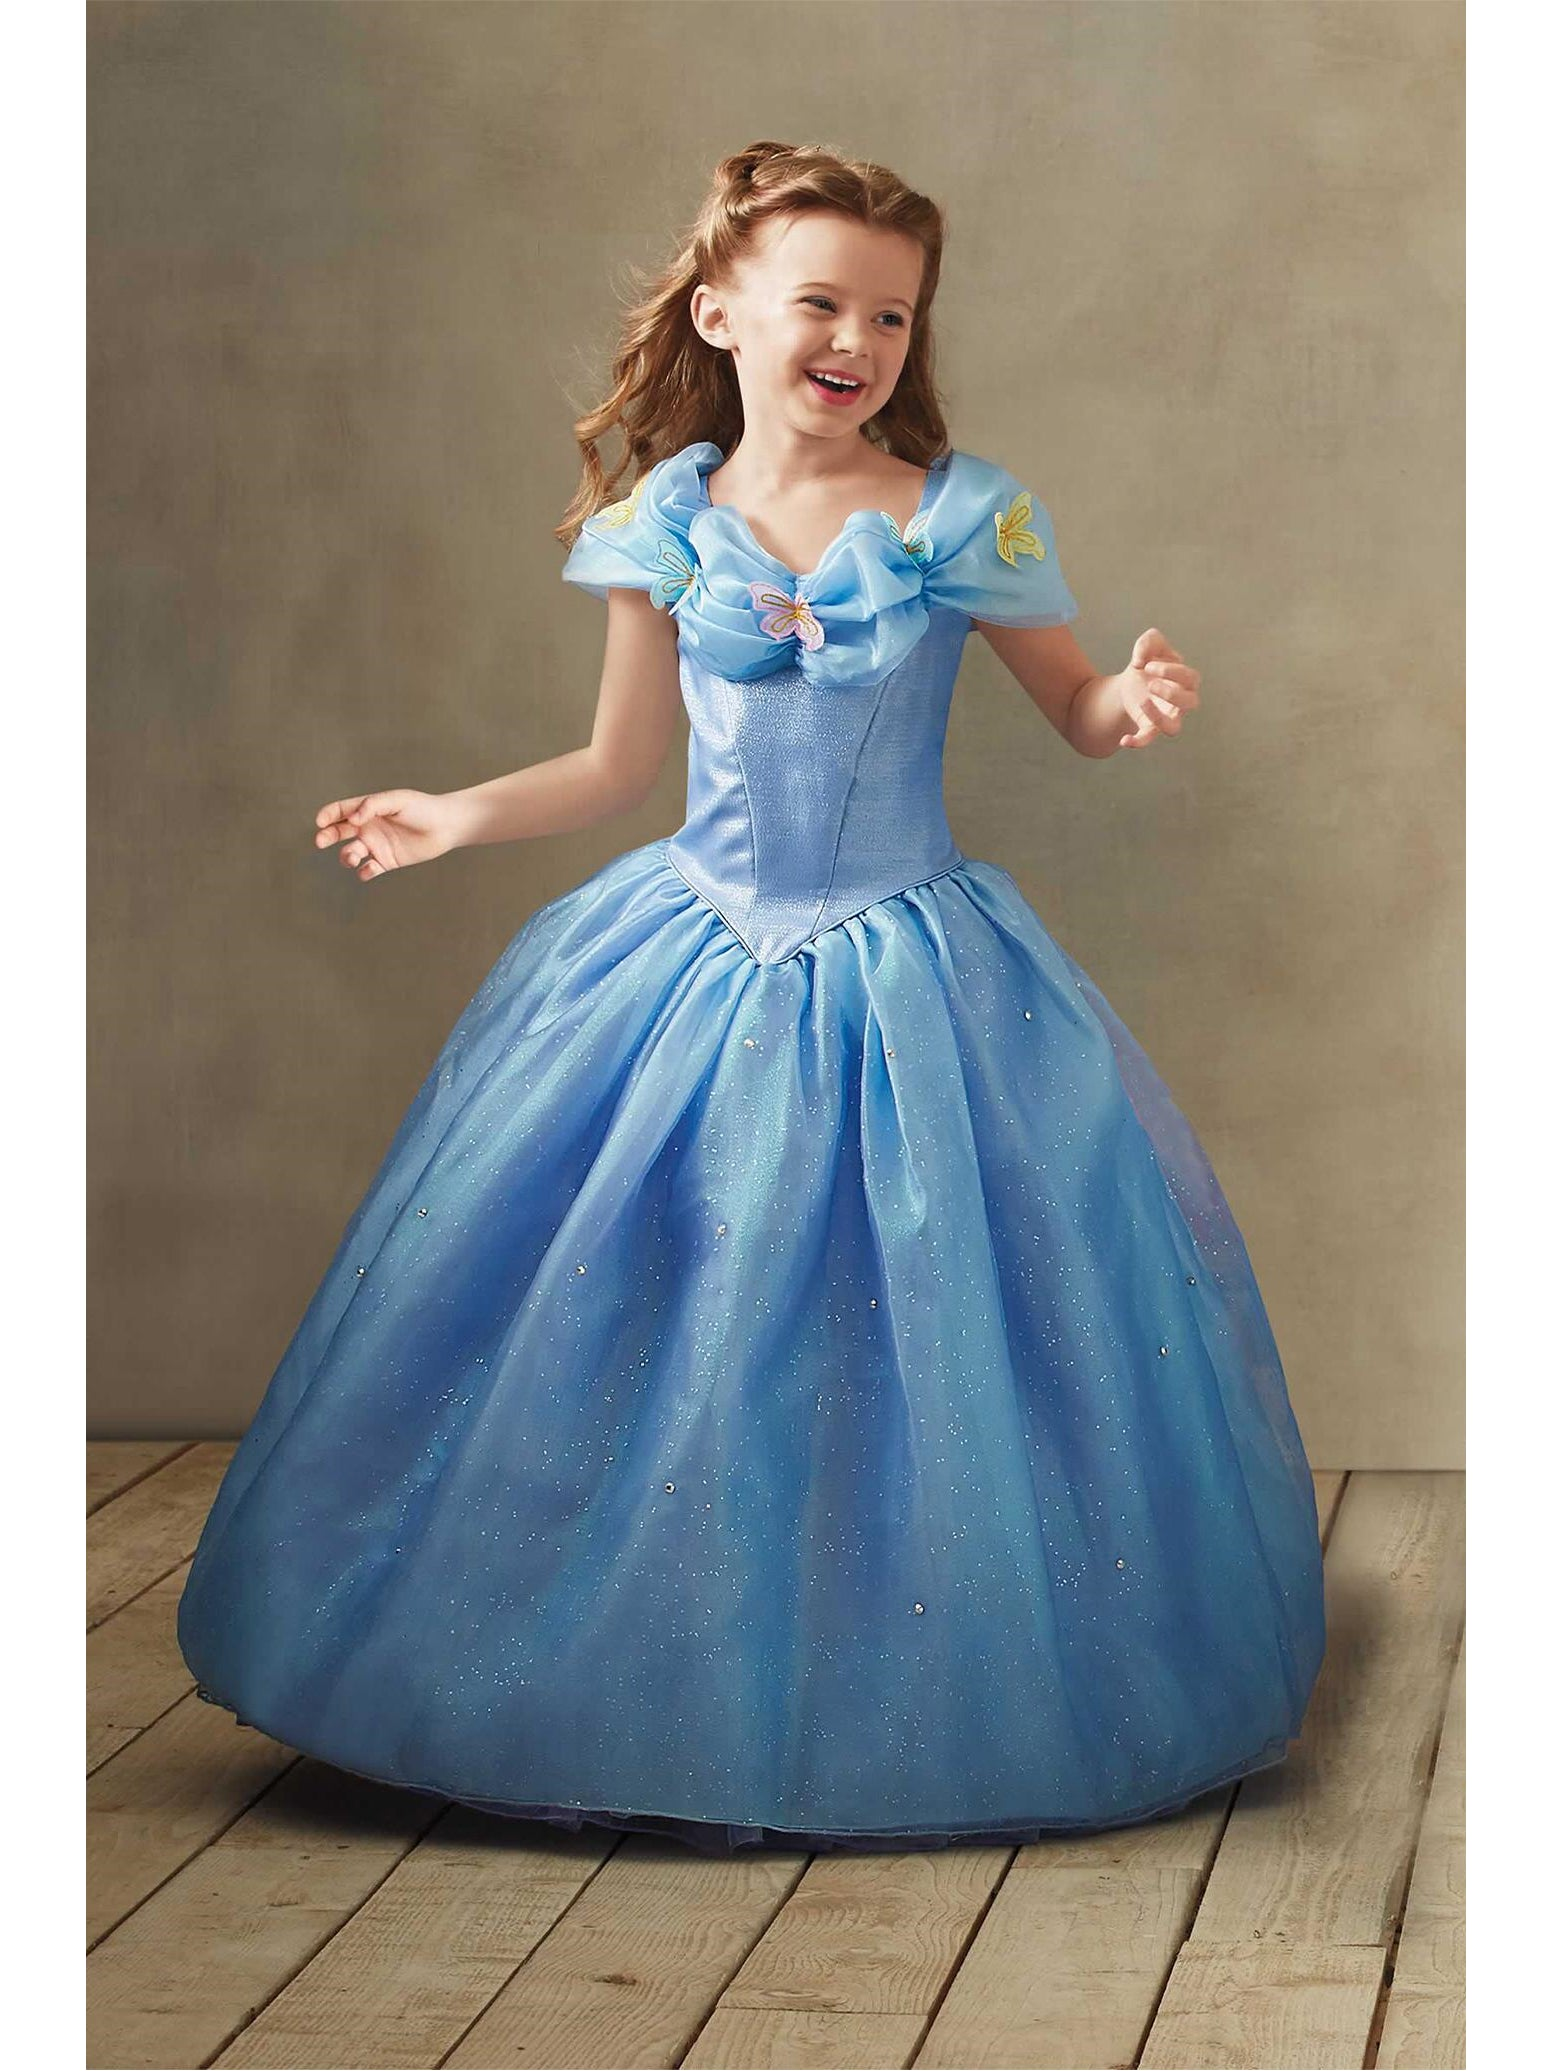 The Ultimate Collection Cinderella Ball Gown For Girls Chasing Fireflies